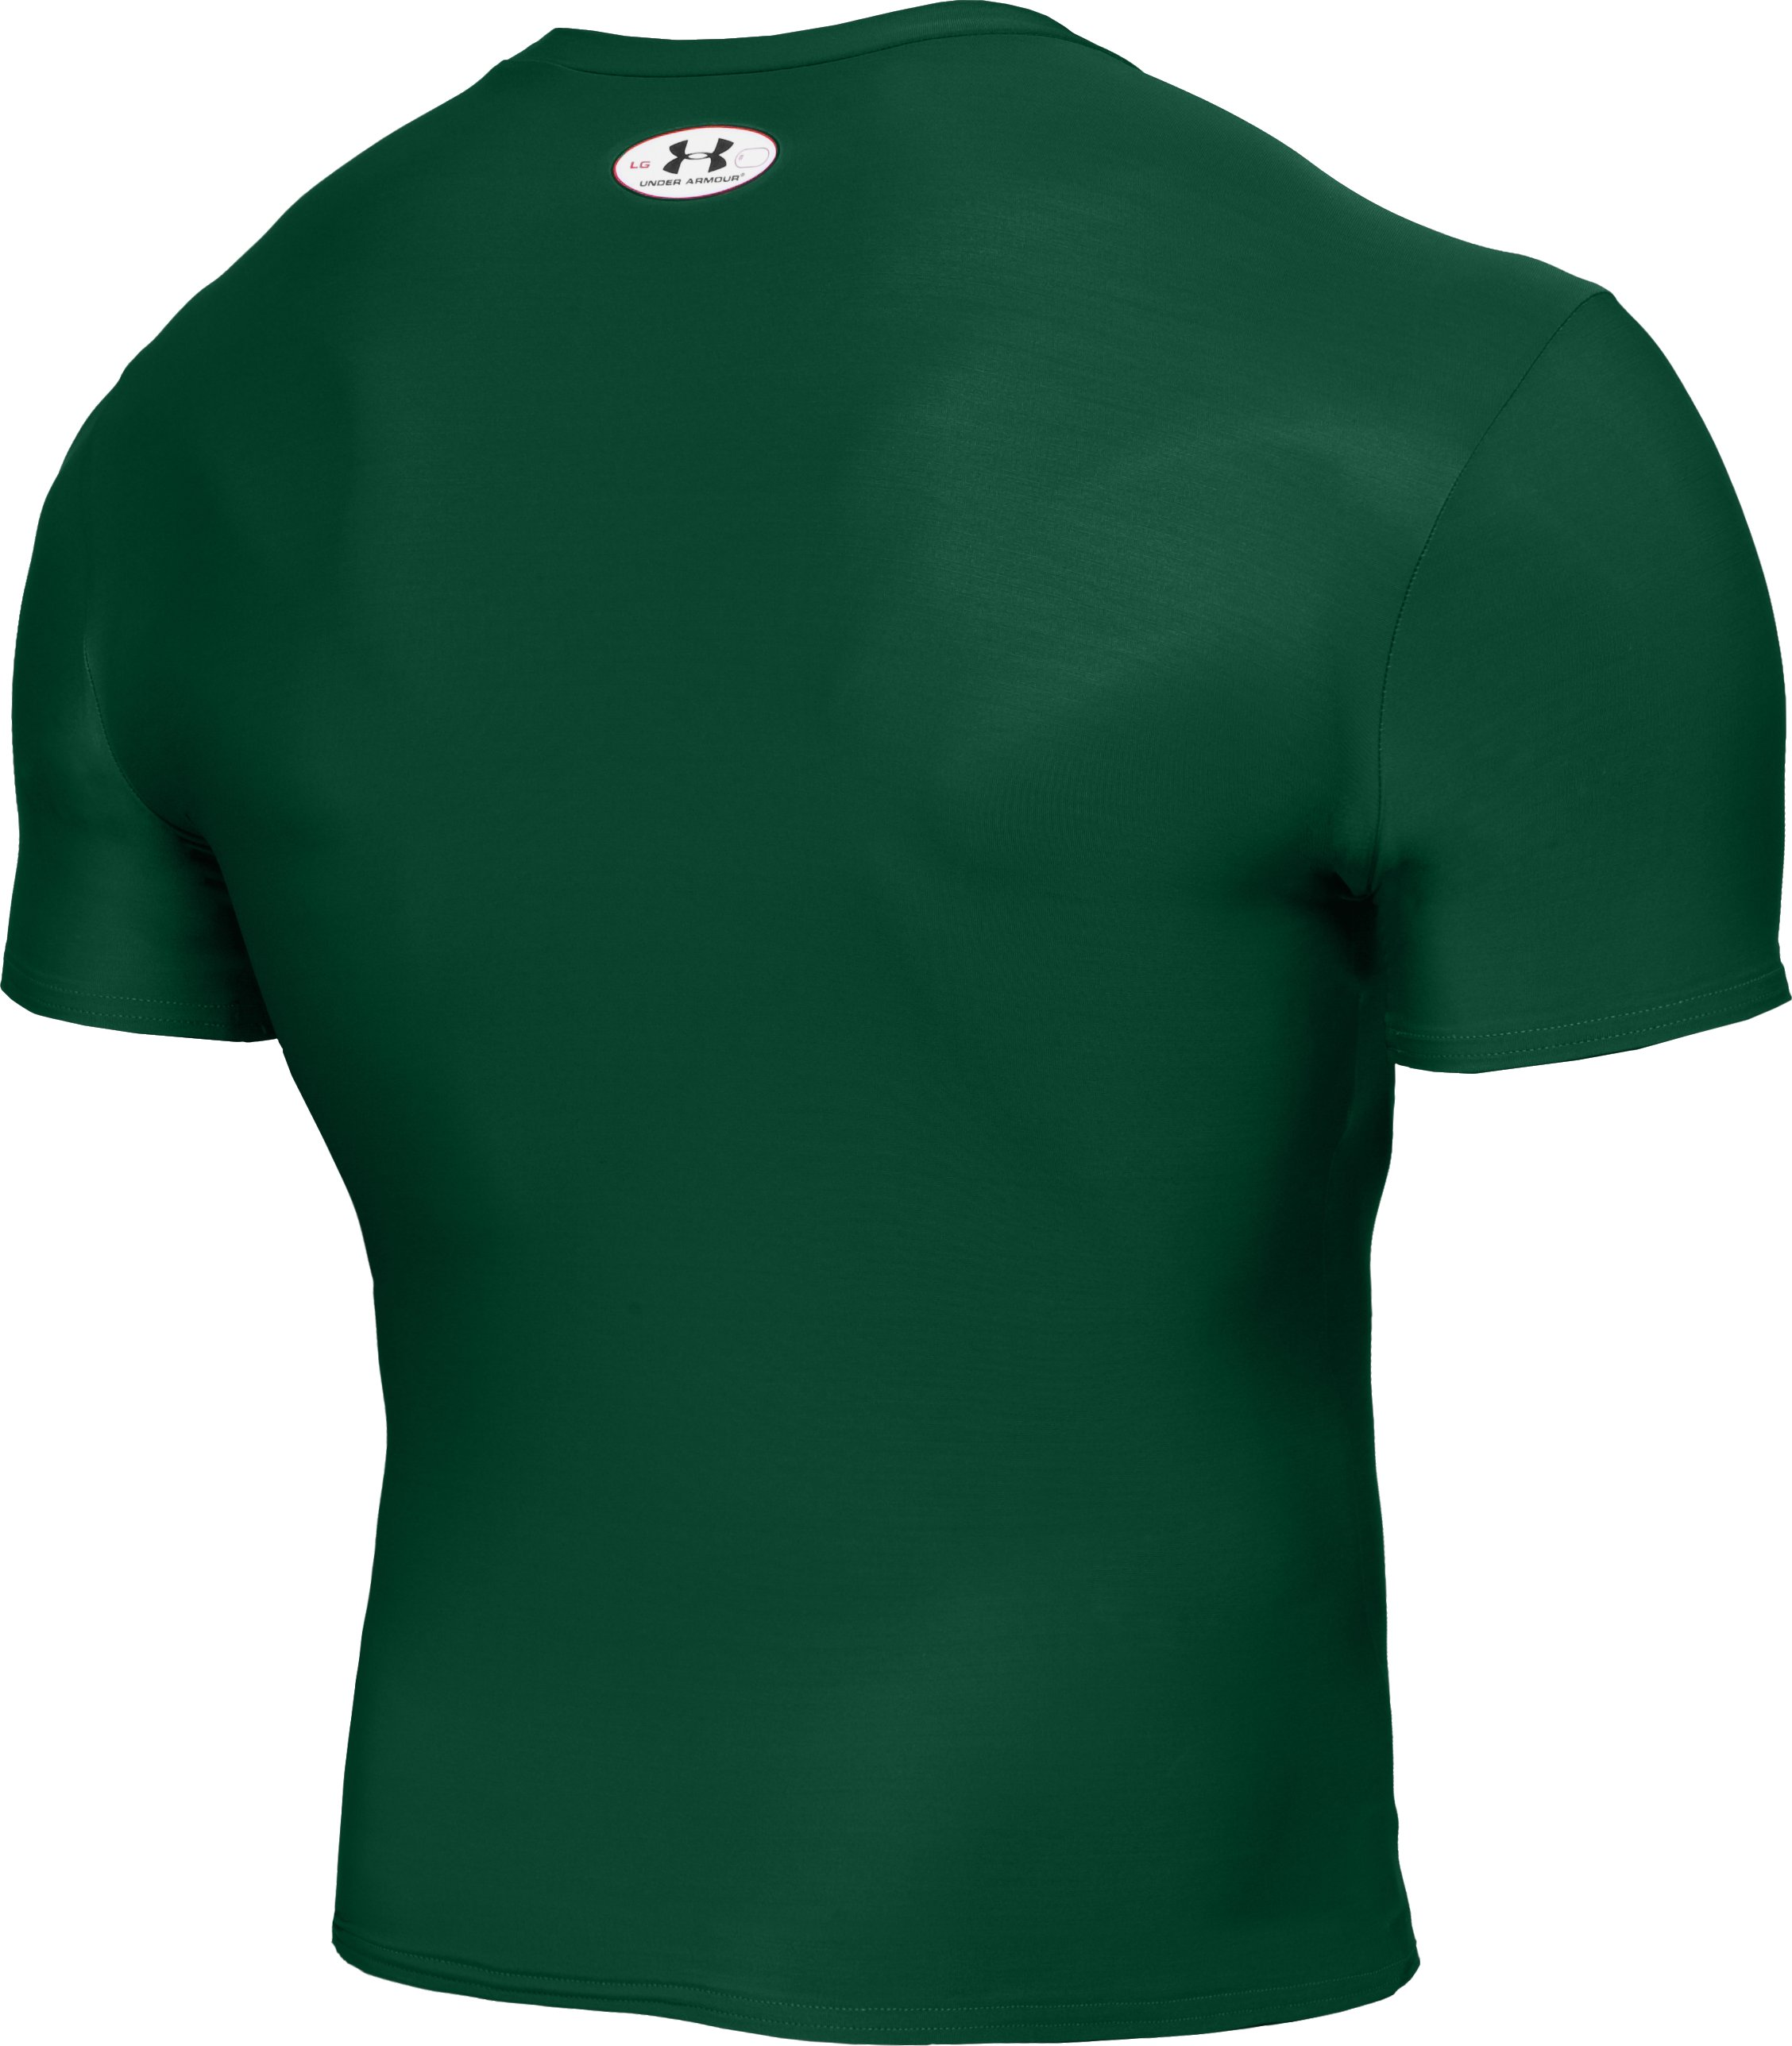 Men's HeatGear® Compression Short Sleeve T-Shirt, Forest Green